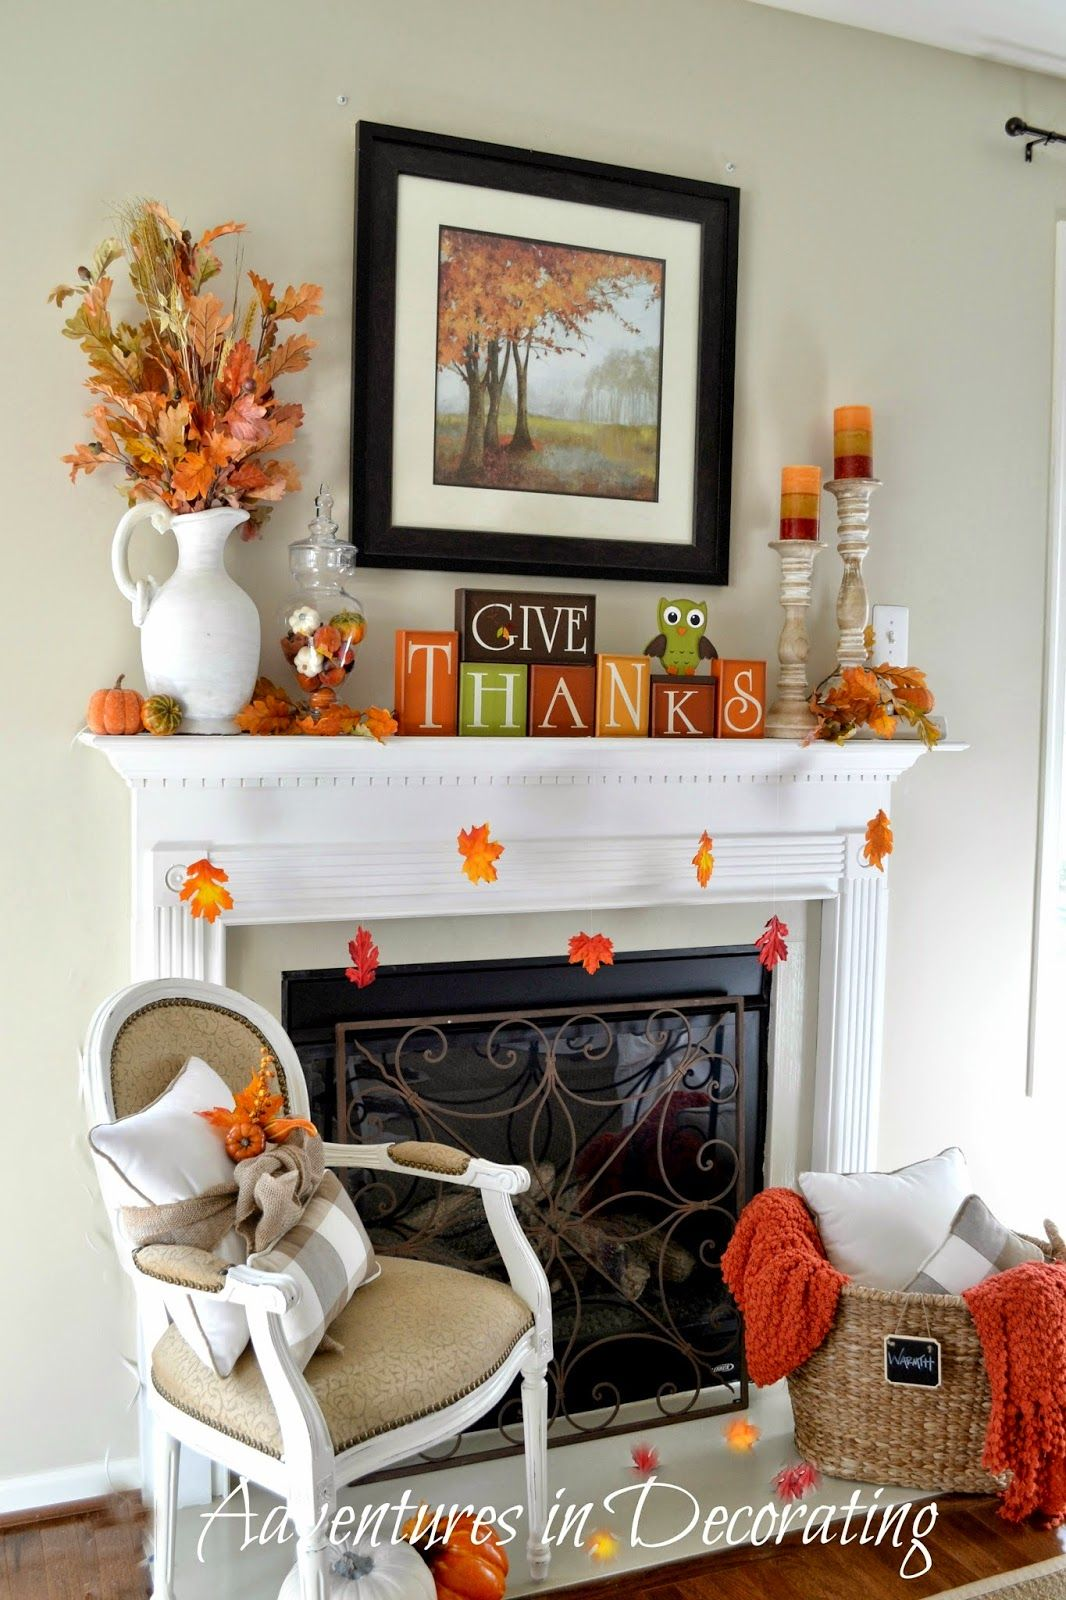 Give Thanks Adventures in Decorating Our